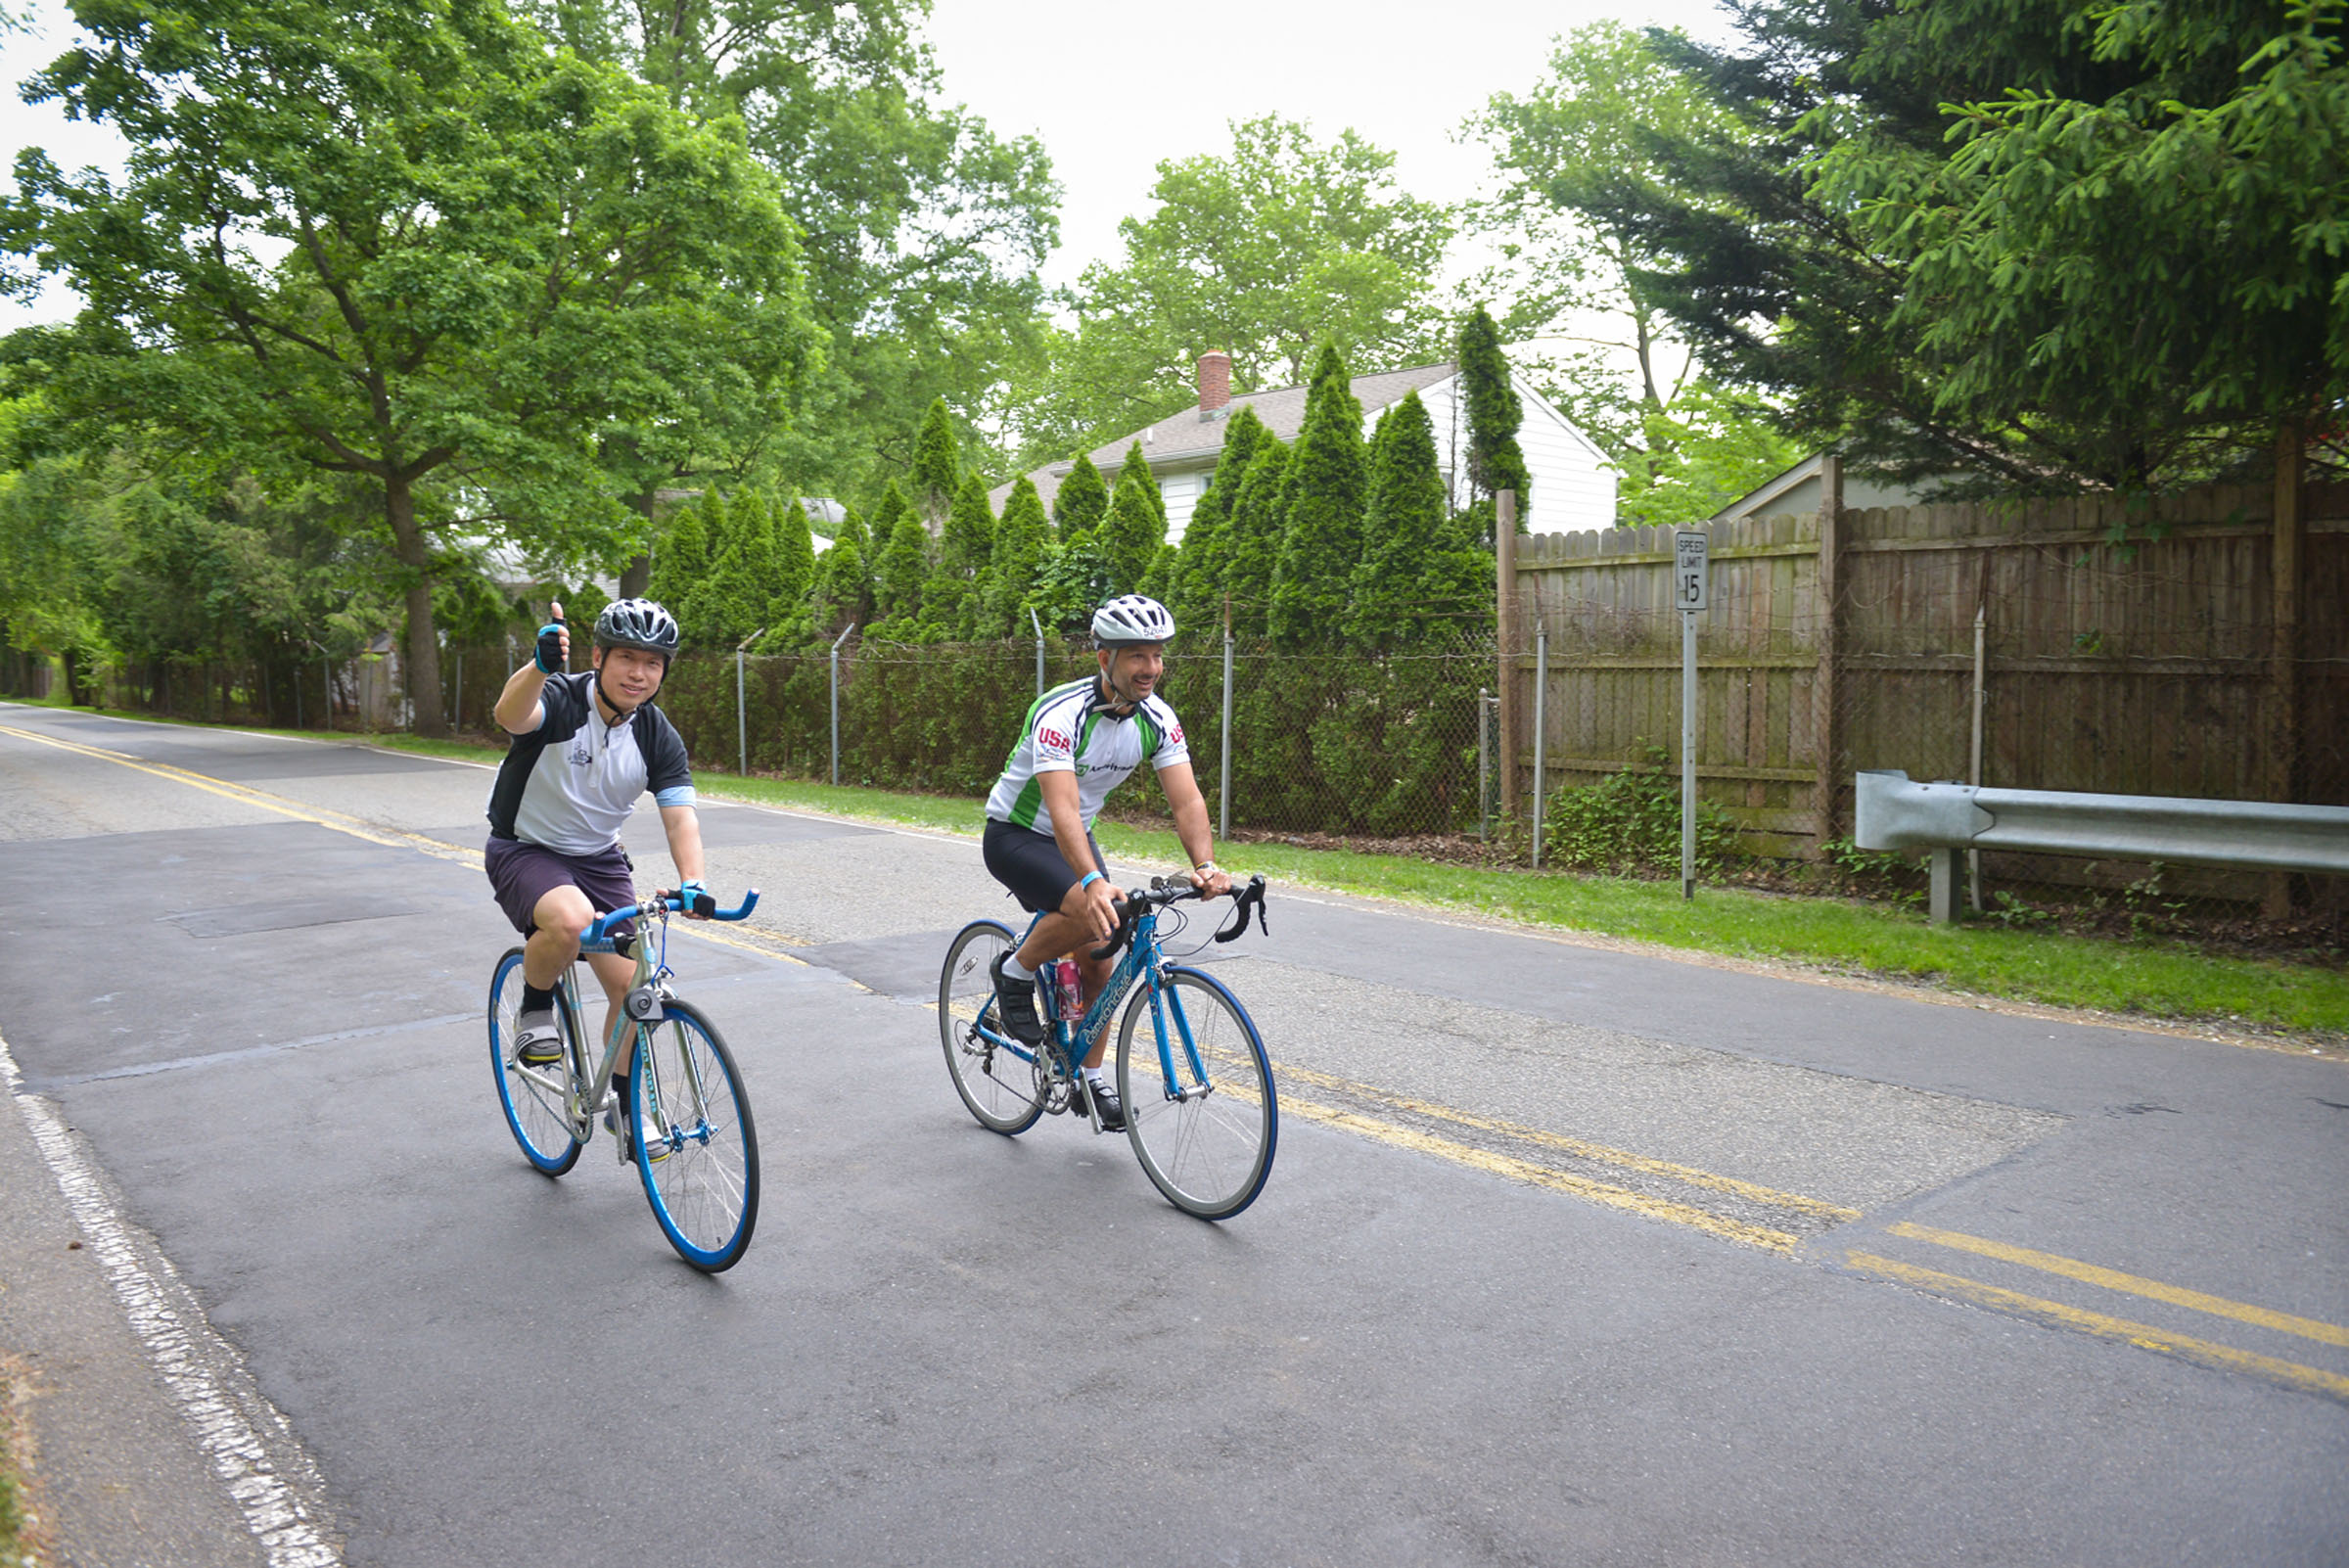 2017-06-04 GTD4A Charity Bike Ride - BCC - Paramus NJ-2322.jpg